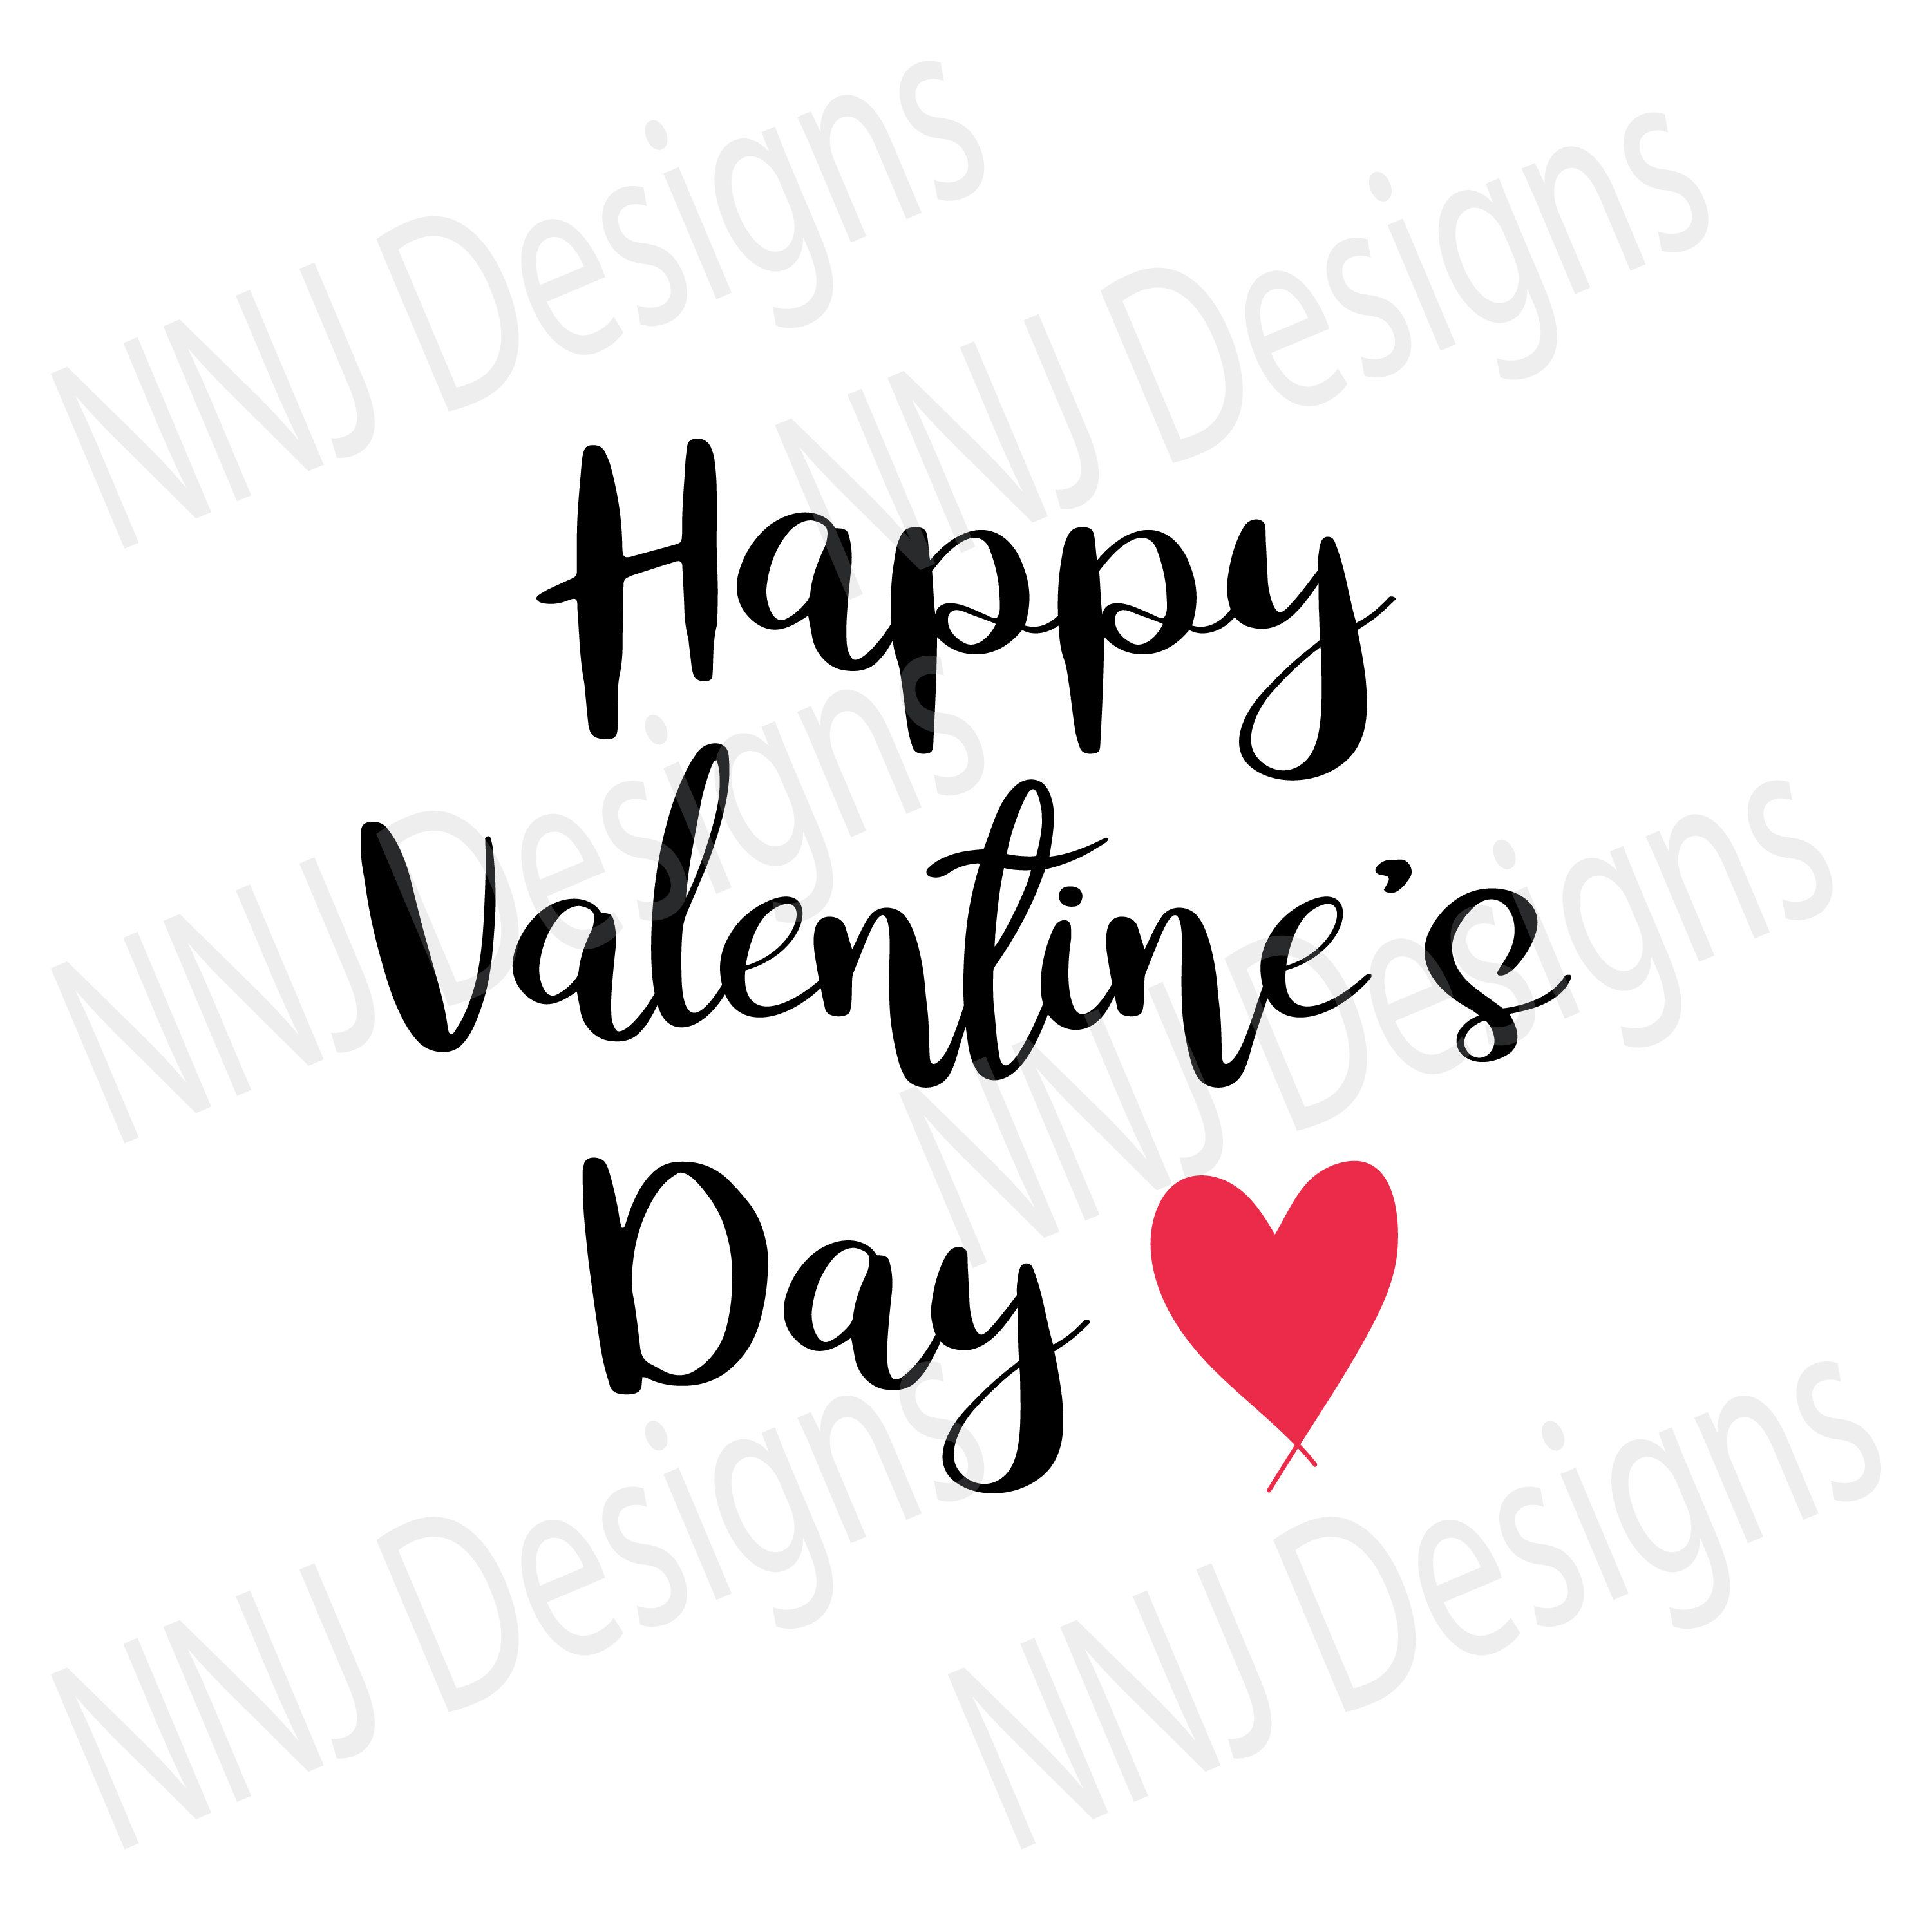 Happy Valentine S Day Svg Love Heart Couple Cute Text